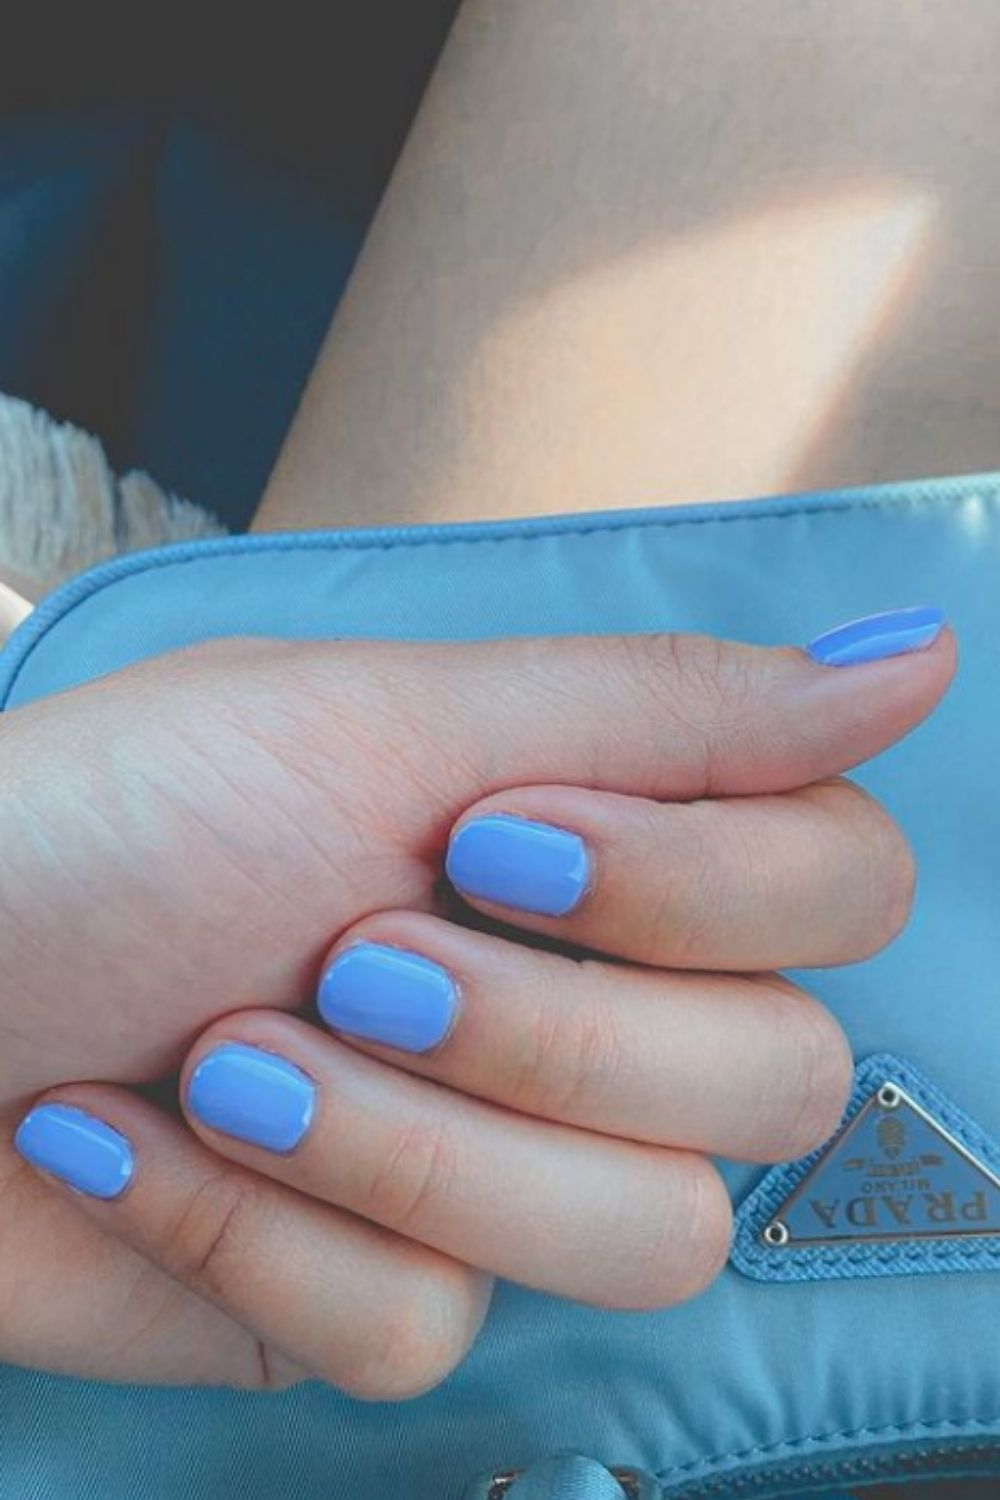 Pretty blue sky nails designs and ideas for your summer nails 2021